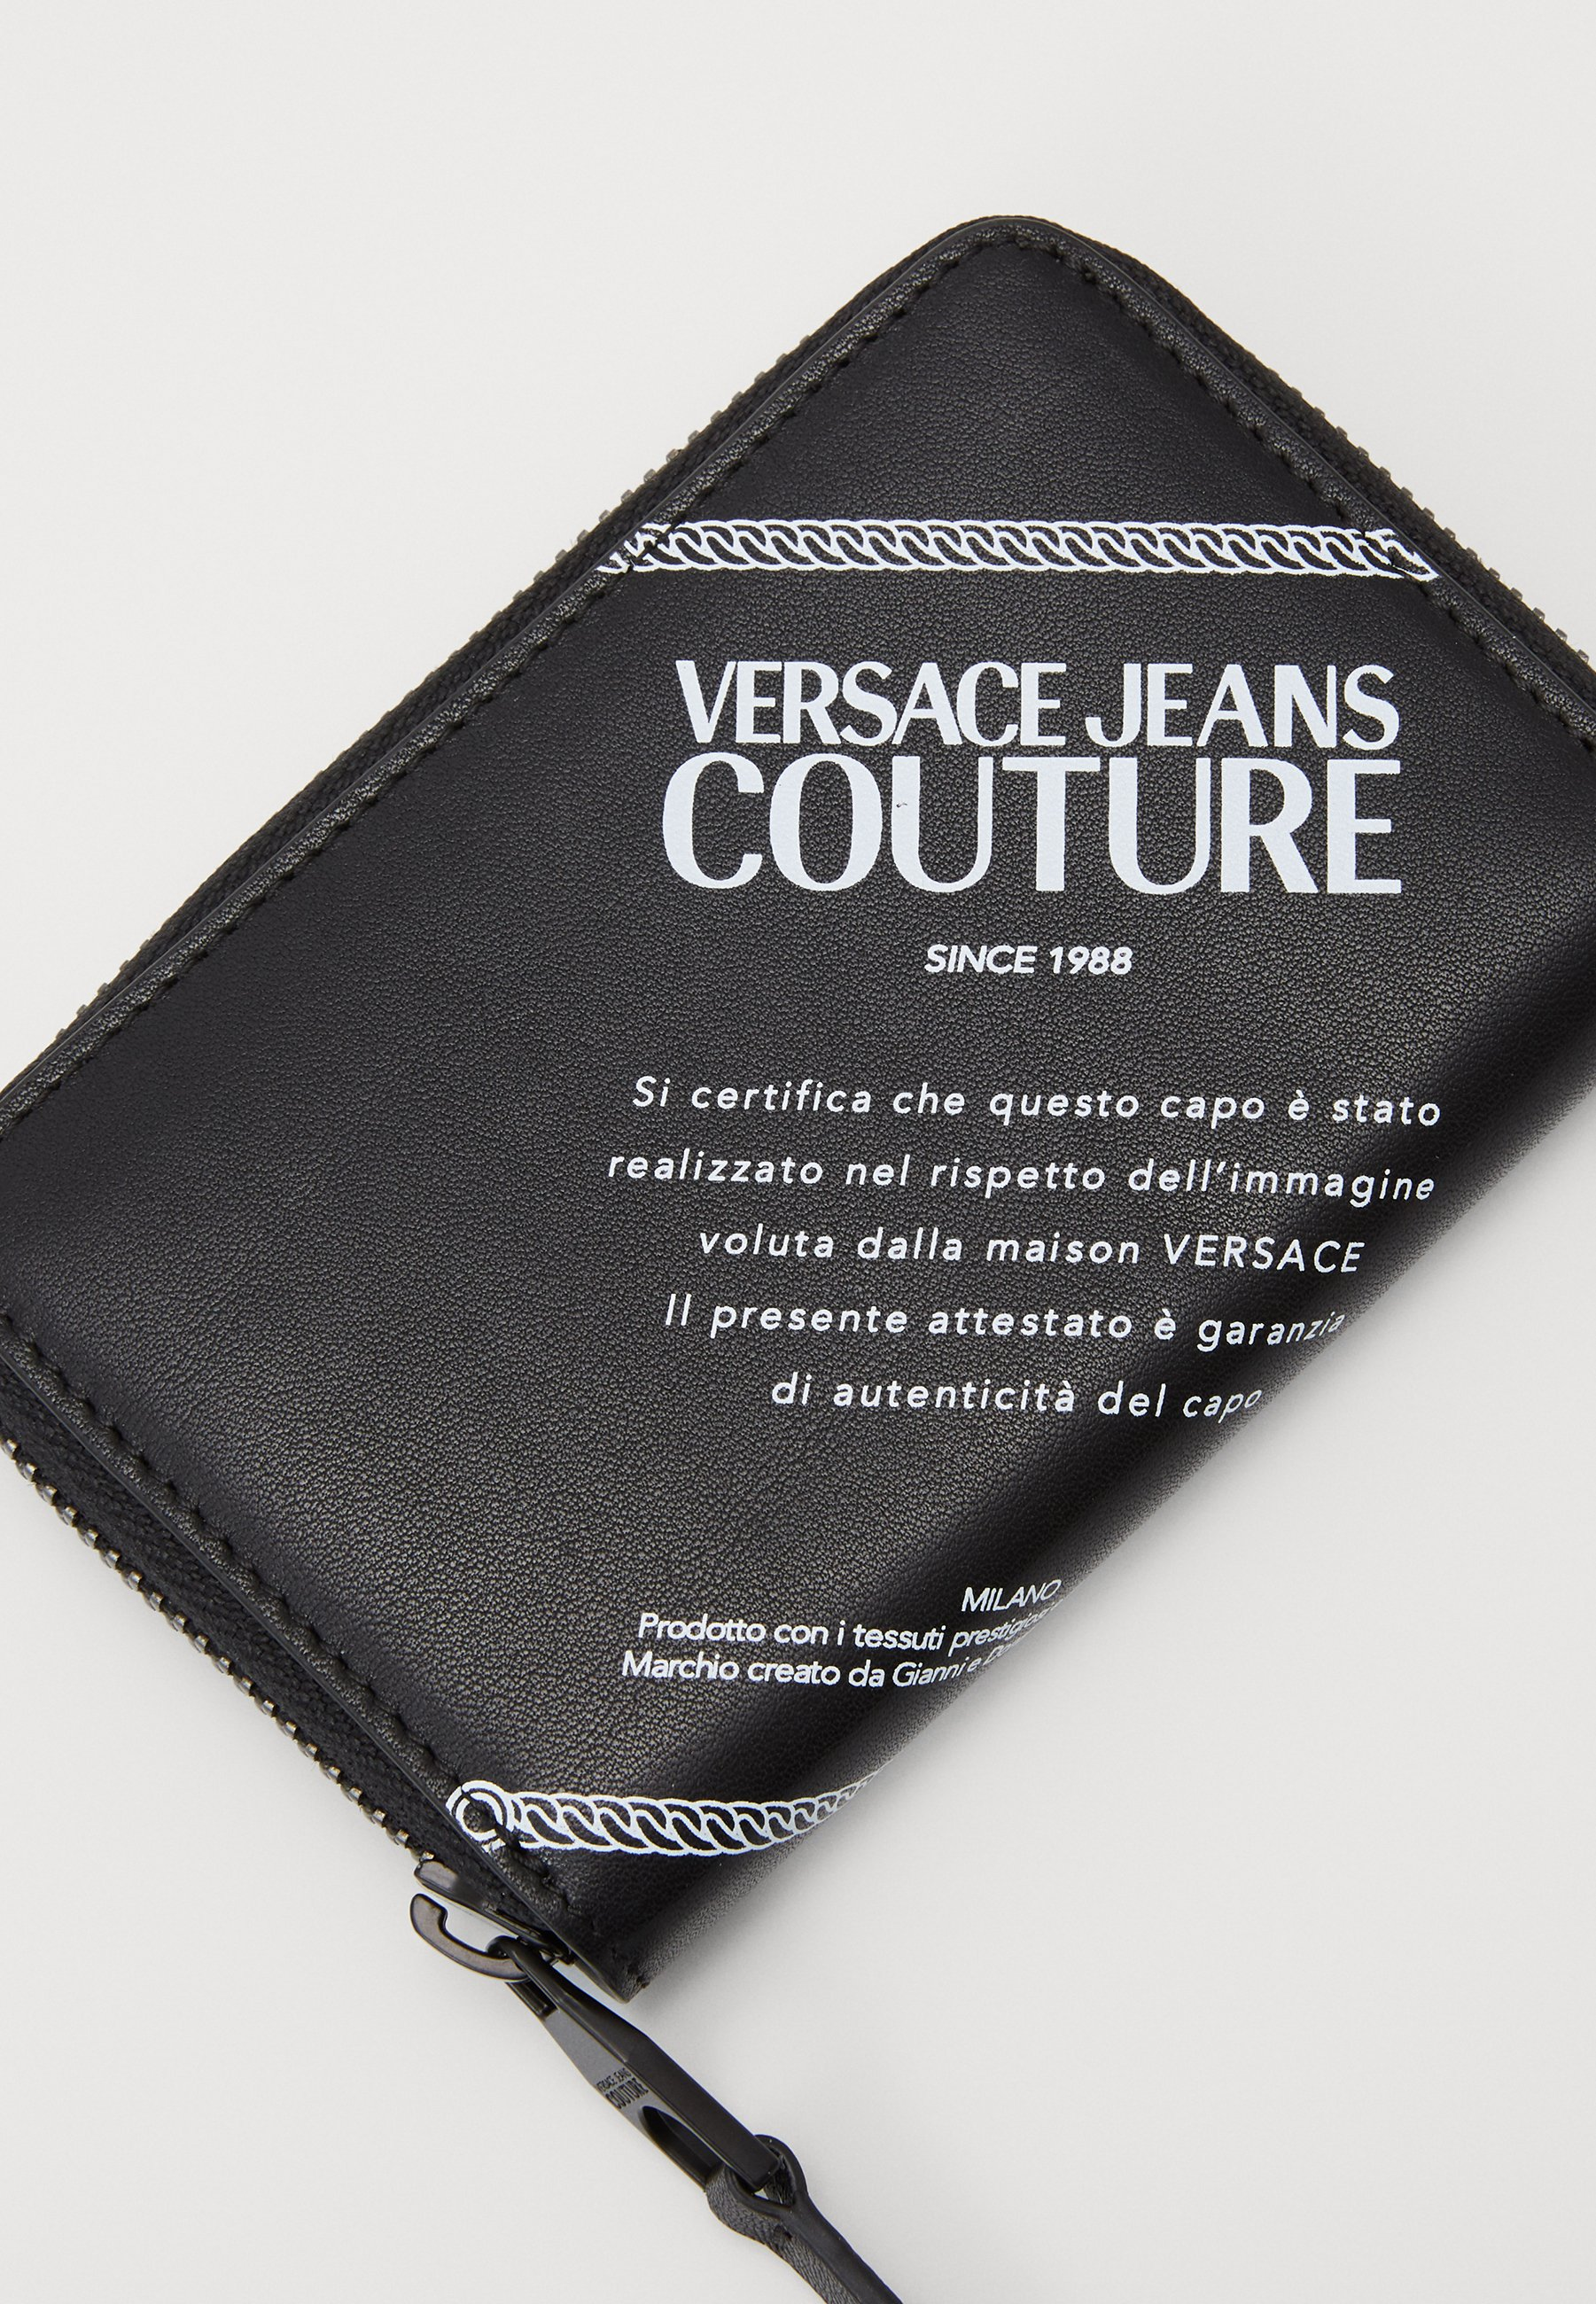 Versace Jeans Couture Lommebok - black/white/svart H0pG2HDPjBMINQo